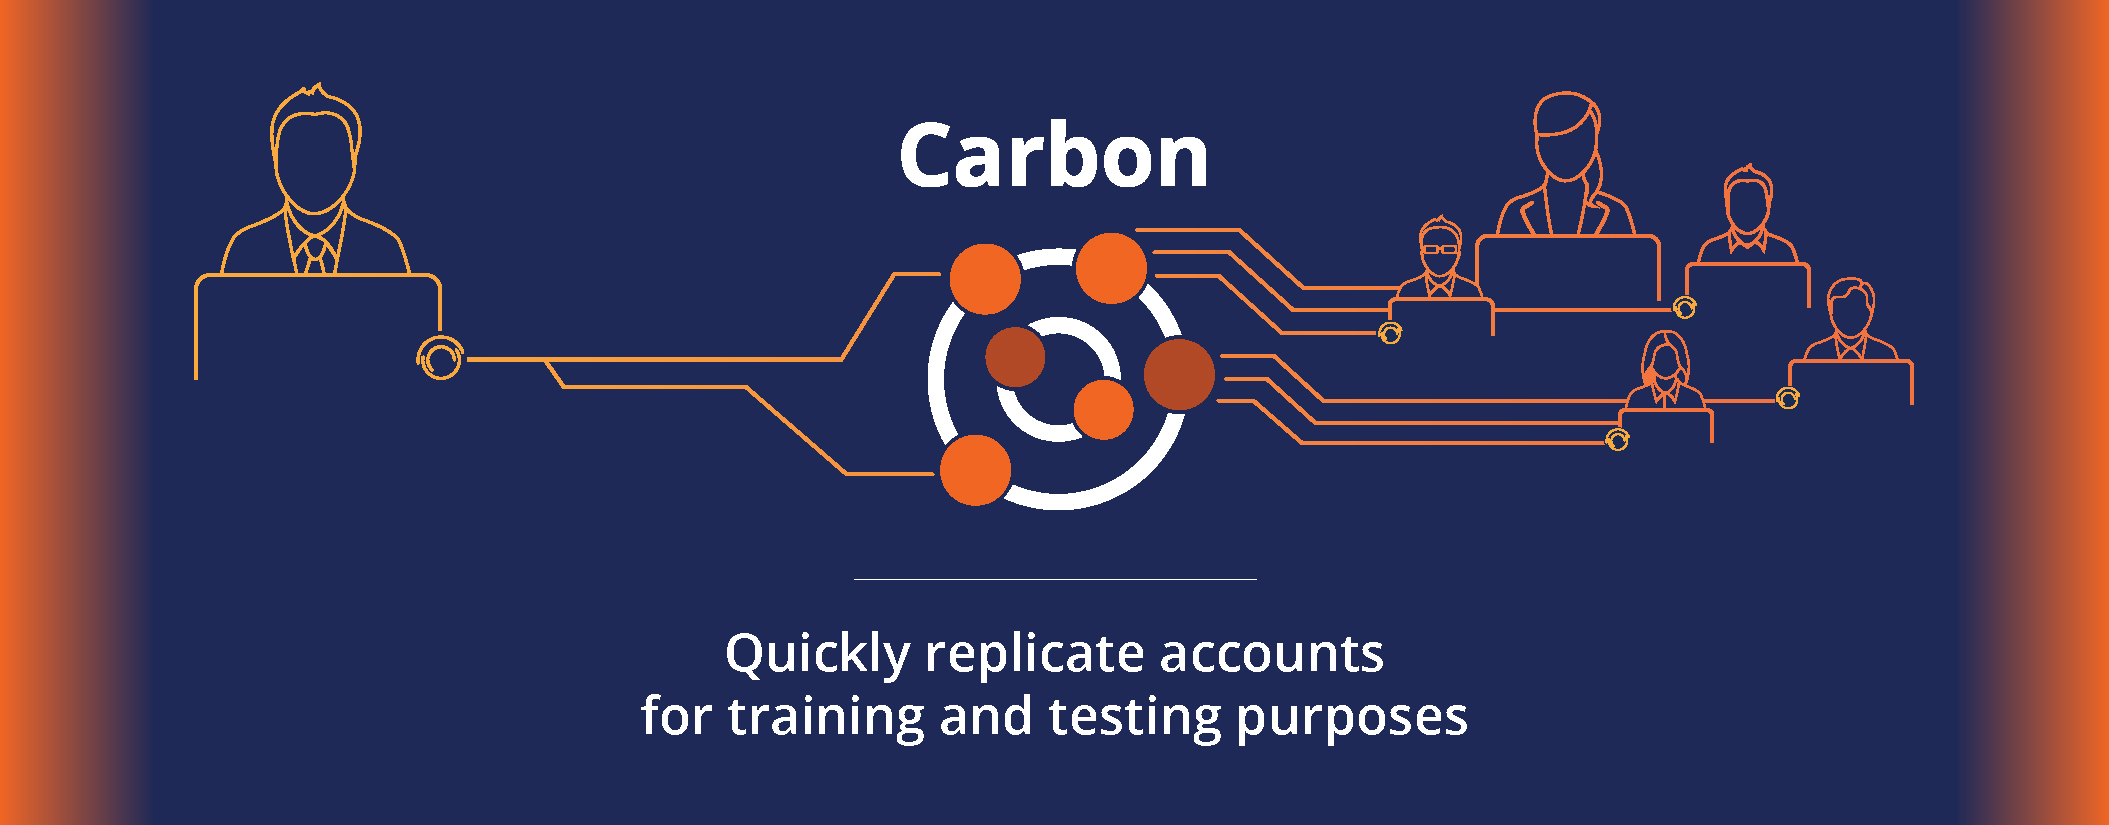 IntelliTect's Carbon software workflow graphic